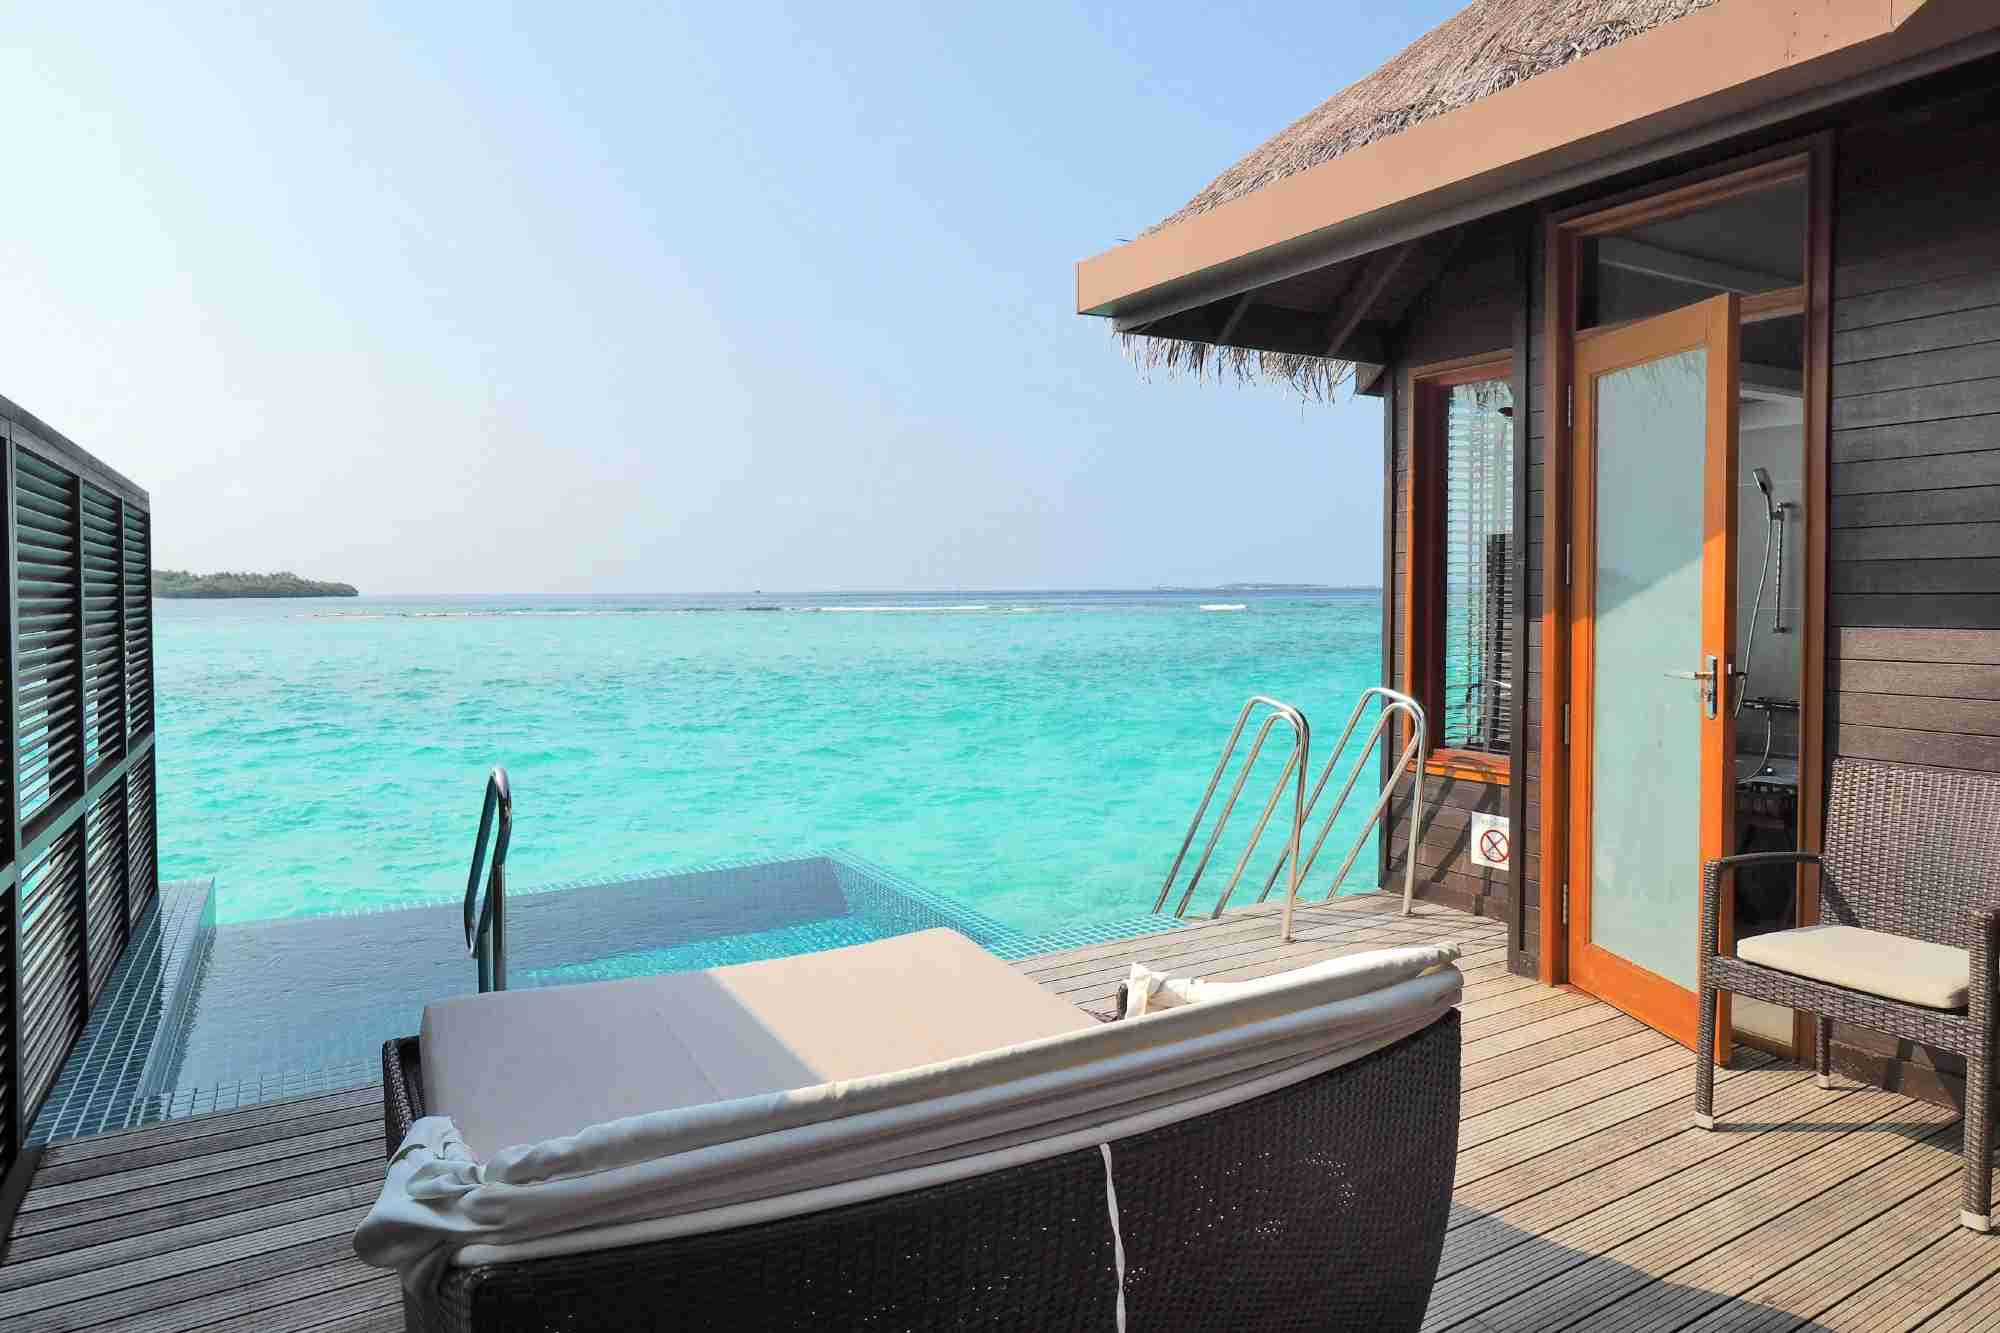 Overwater Bungalow at the Sheraton Maldives. (Photo by Zach Honig/The Points Guy)